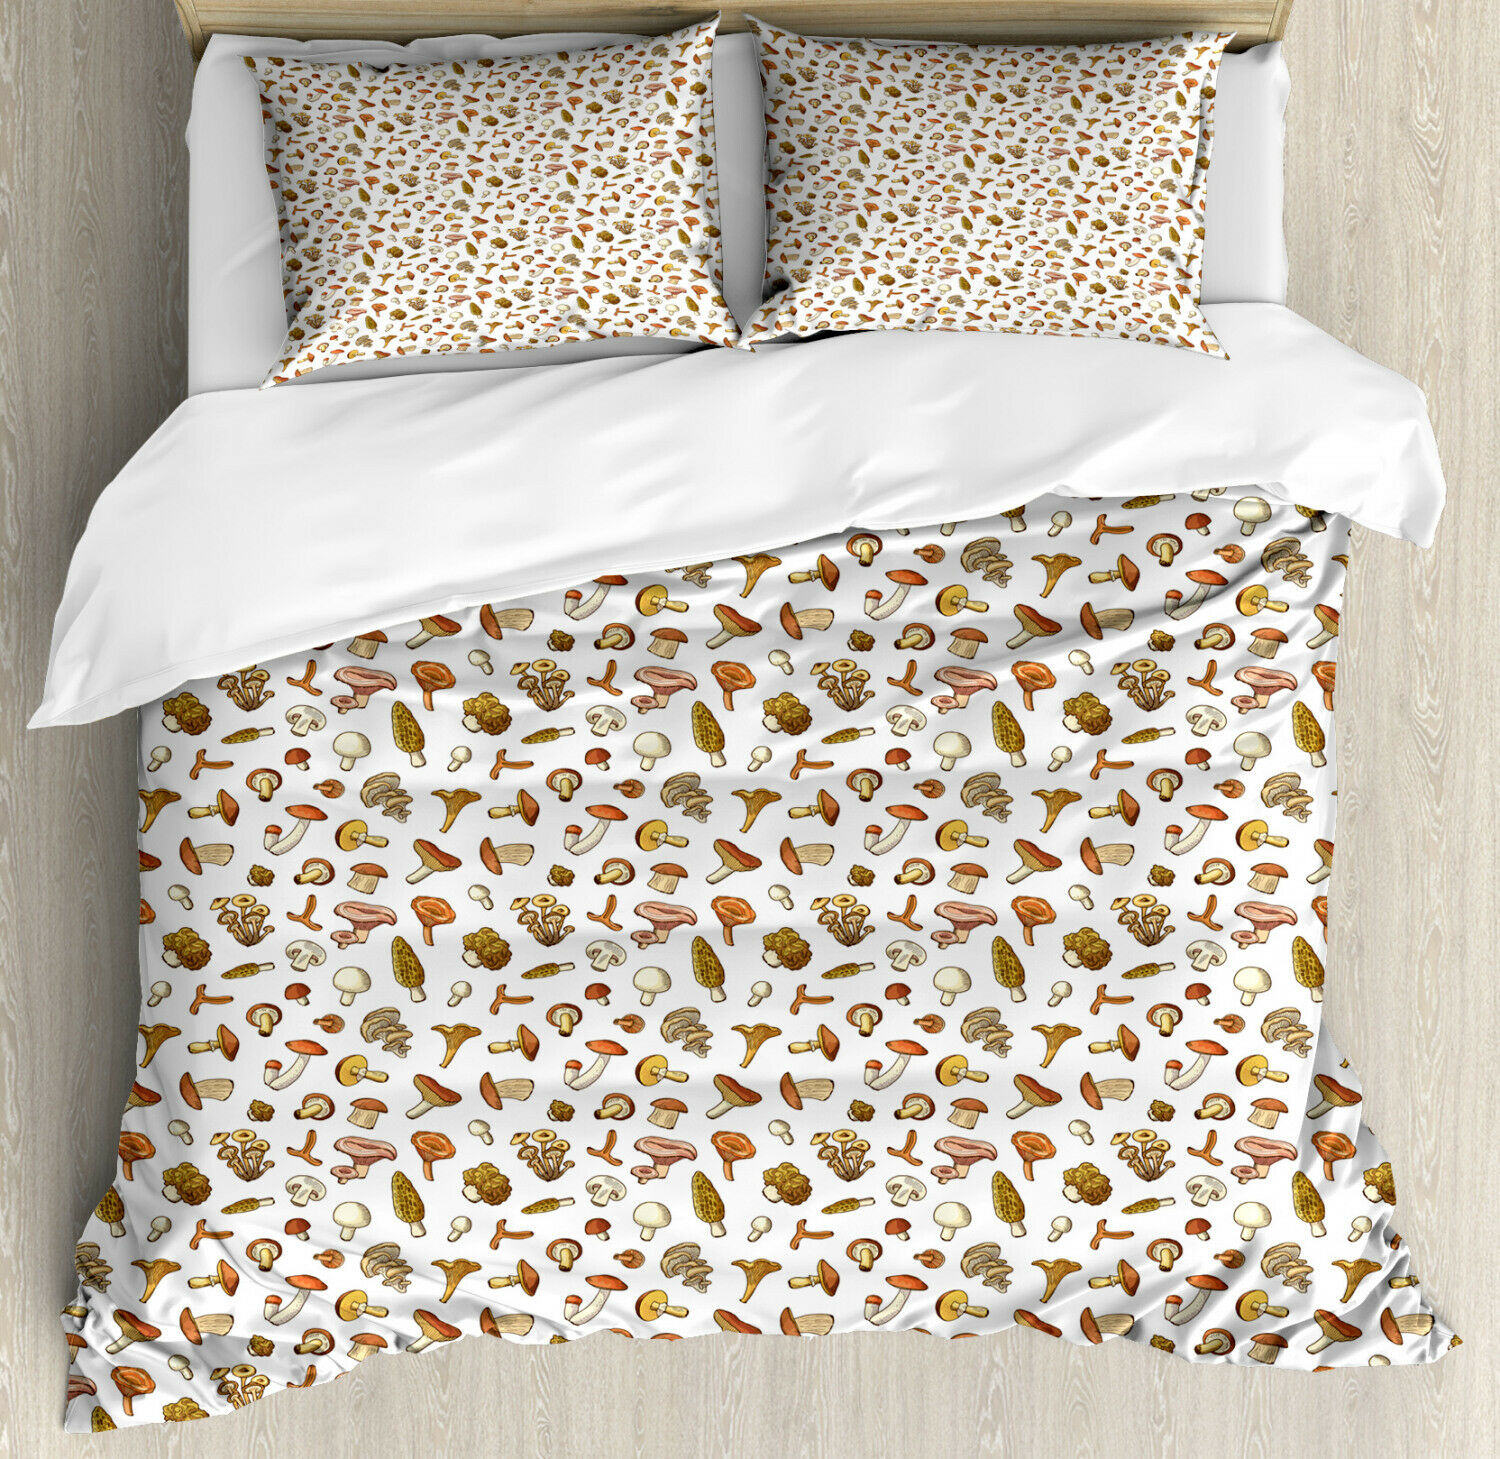 Duvet Cover Set Queen Size with 2 Pillow Shams